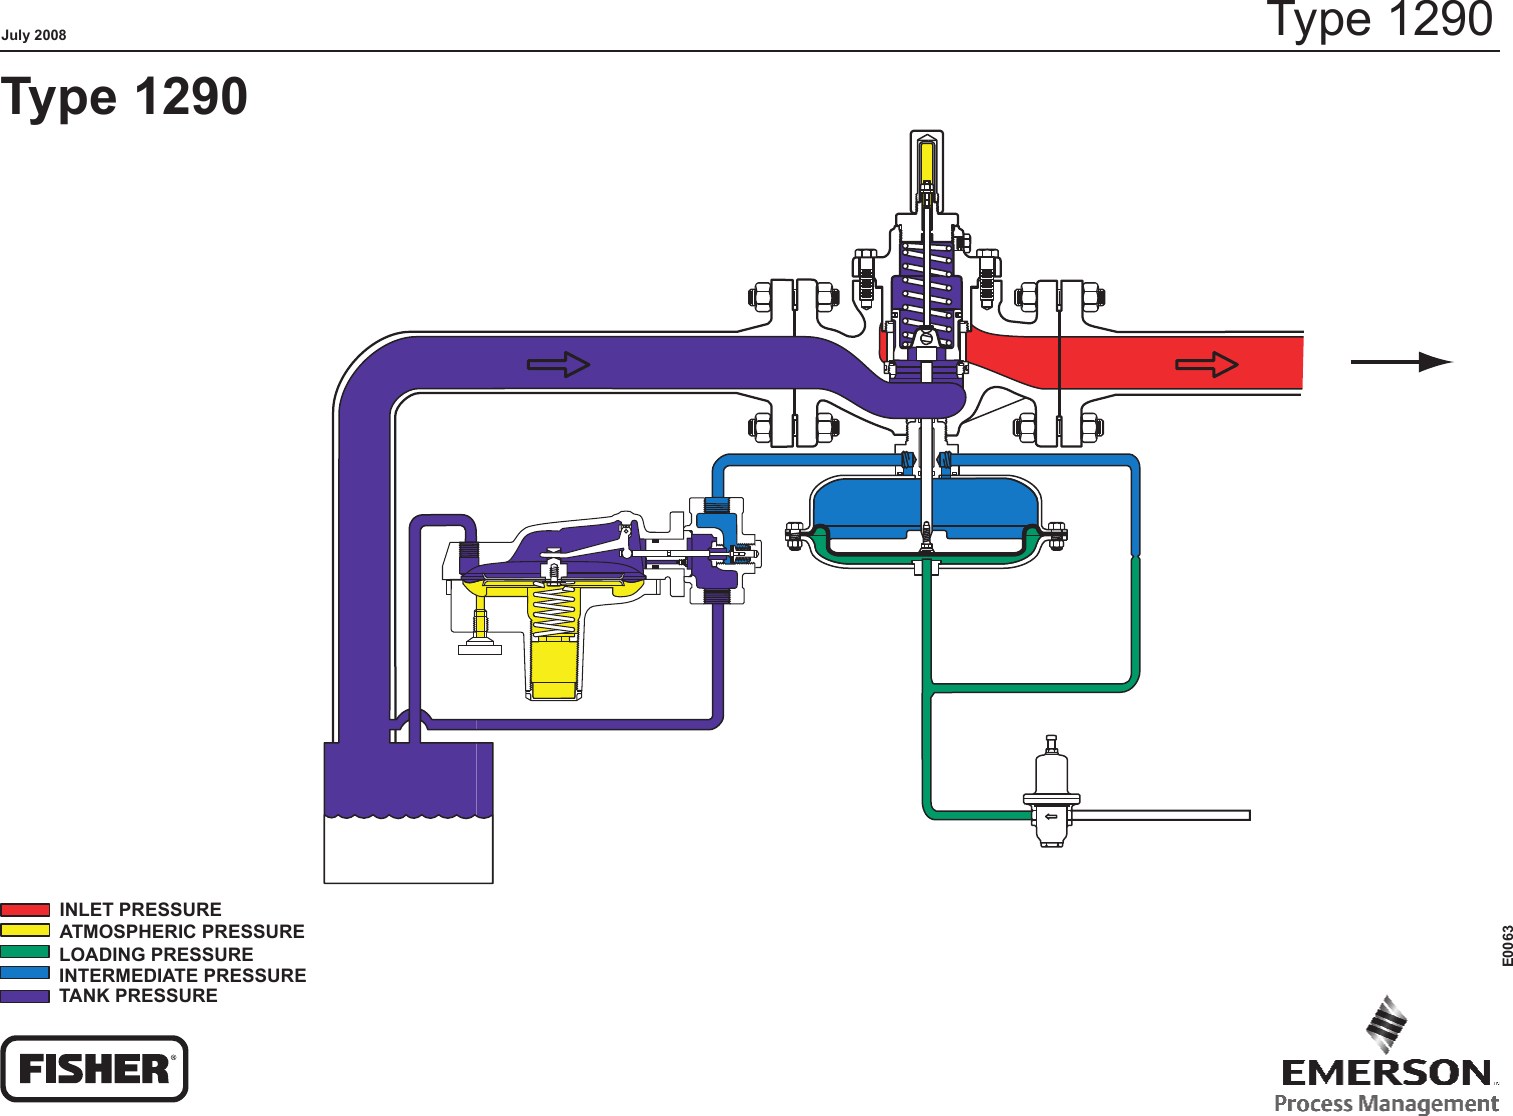 Emerson Type 1290 Vapor Recovery Regulator Drawings And Schematics Pressure Tank Schematic E0063 Lr